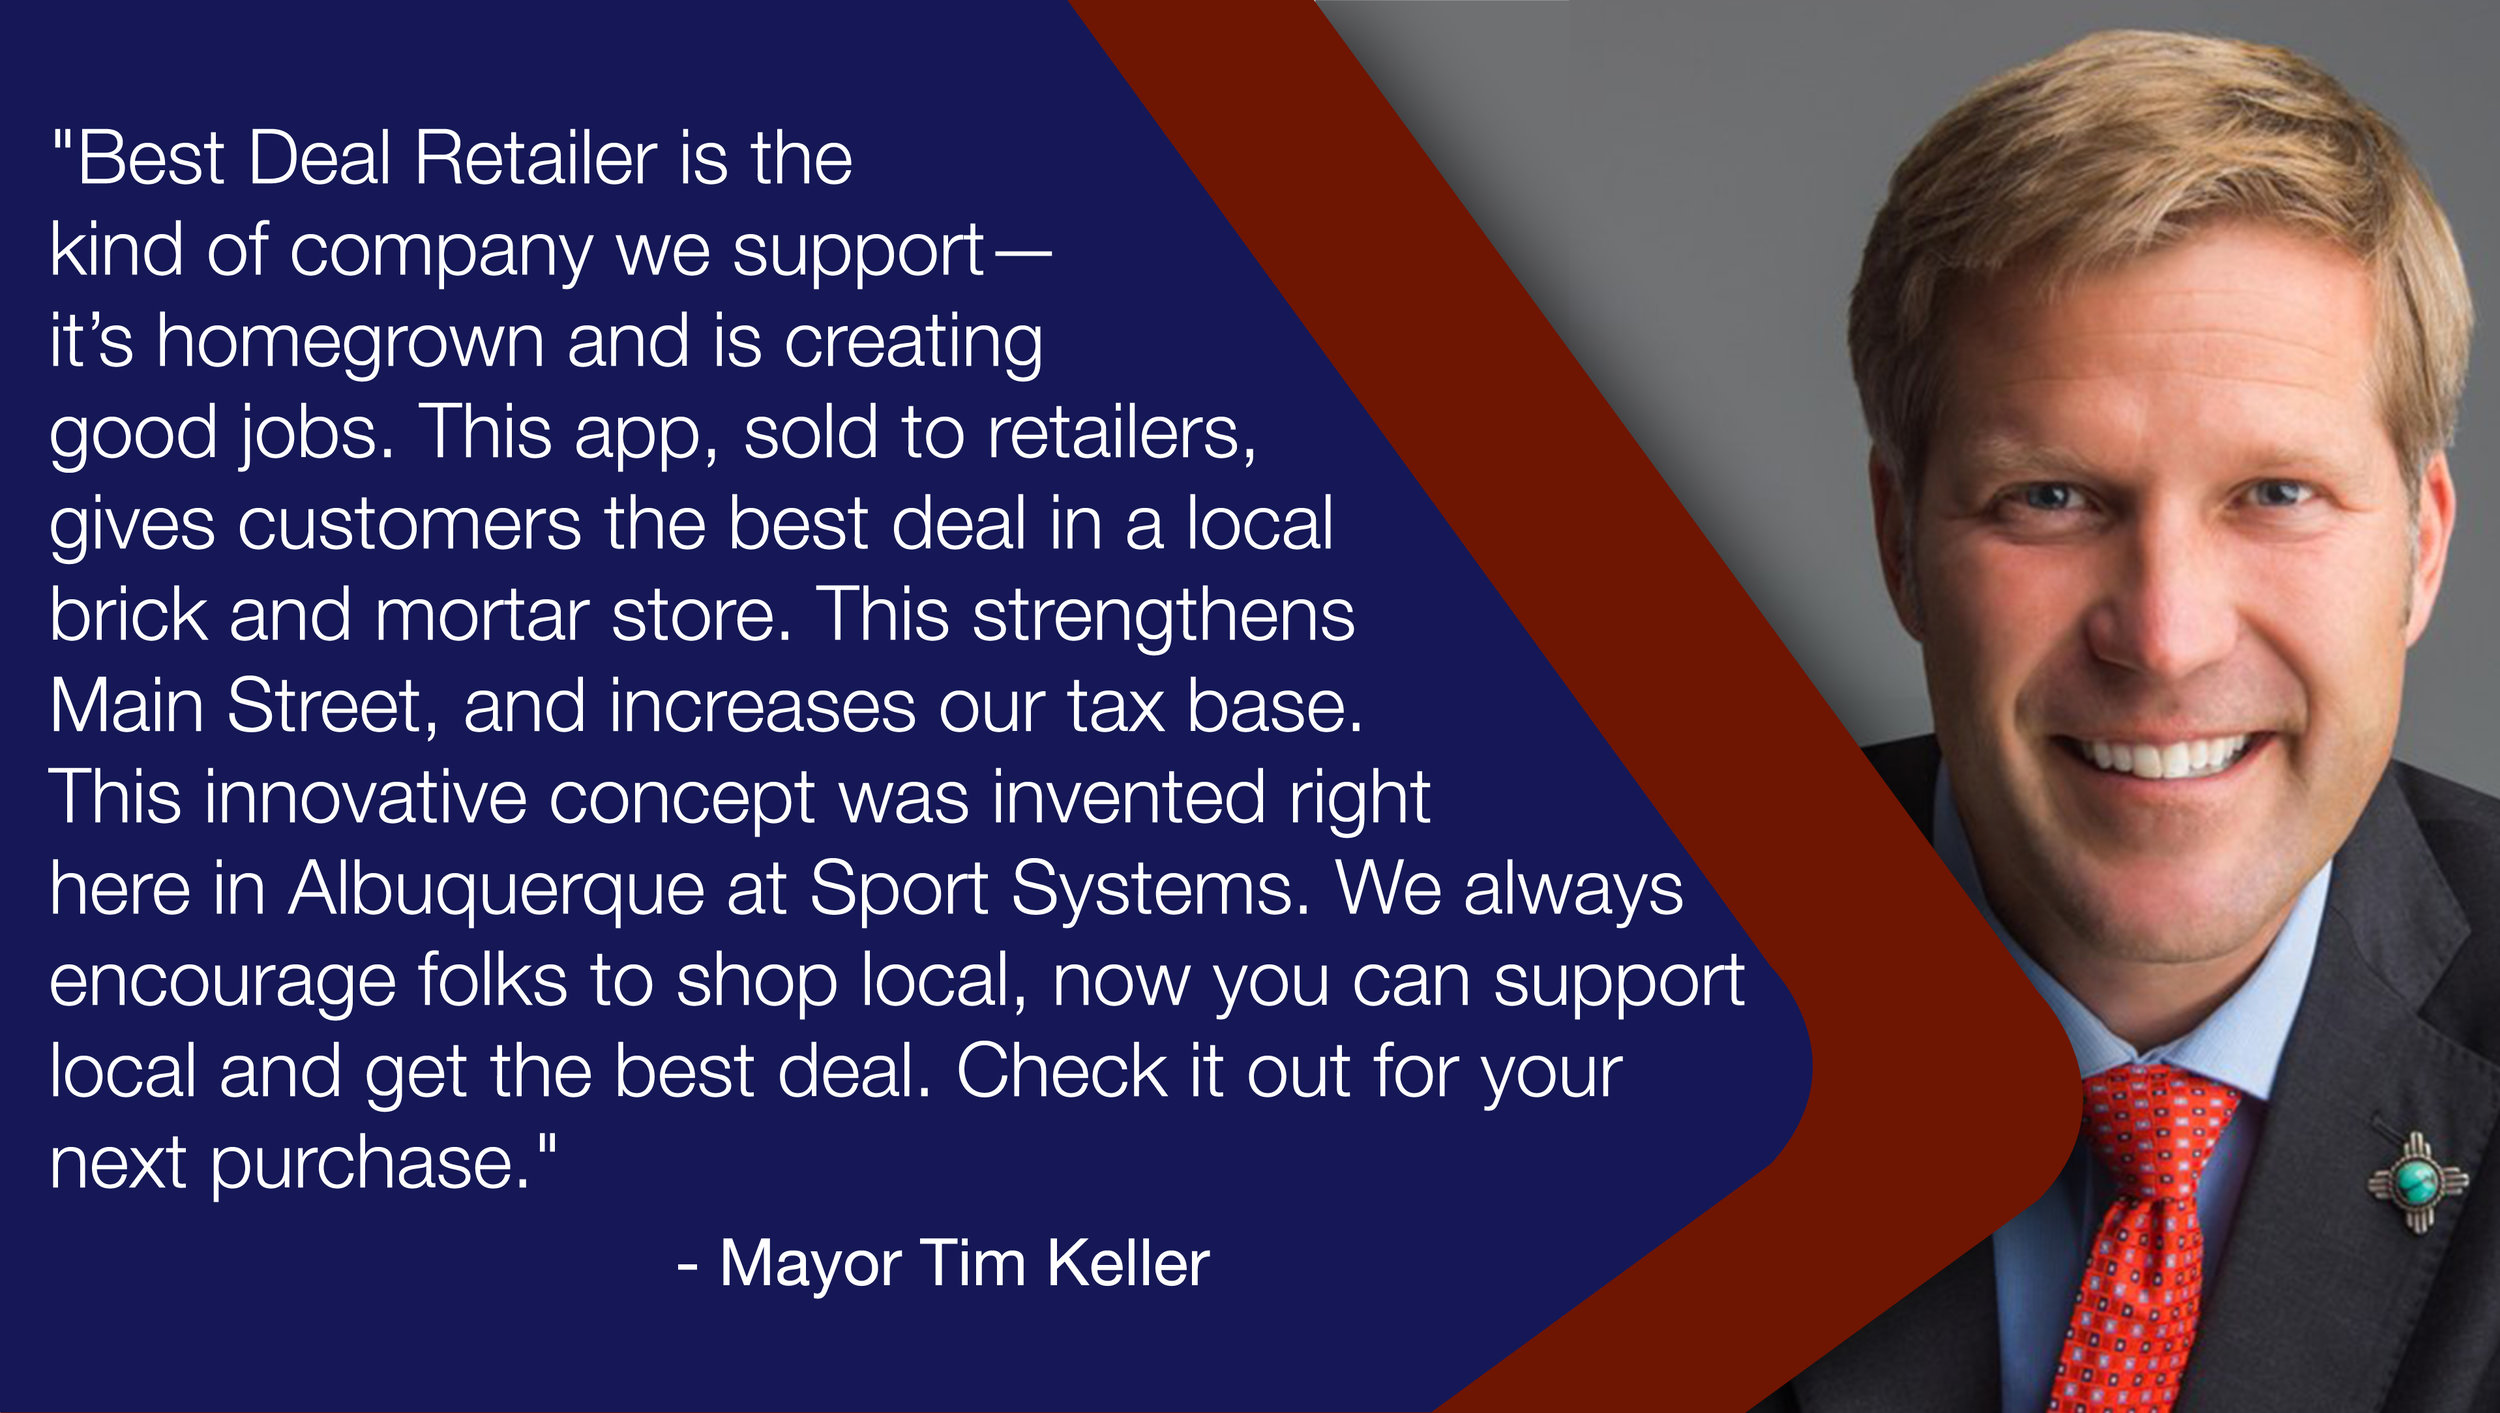 Communities Love Best Deal Retailer - Mayor Keller of Albuquerque supports Best Deal Retailer